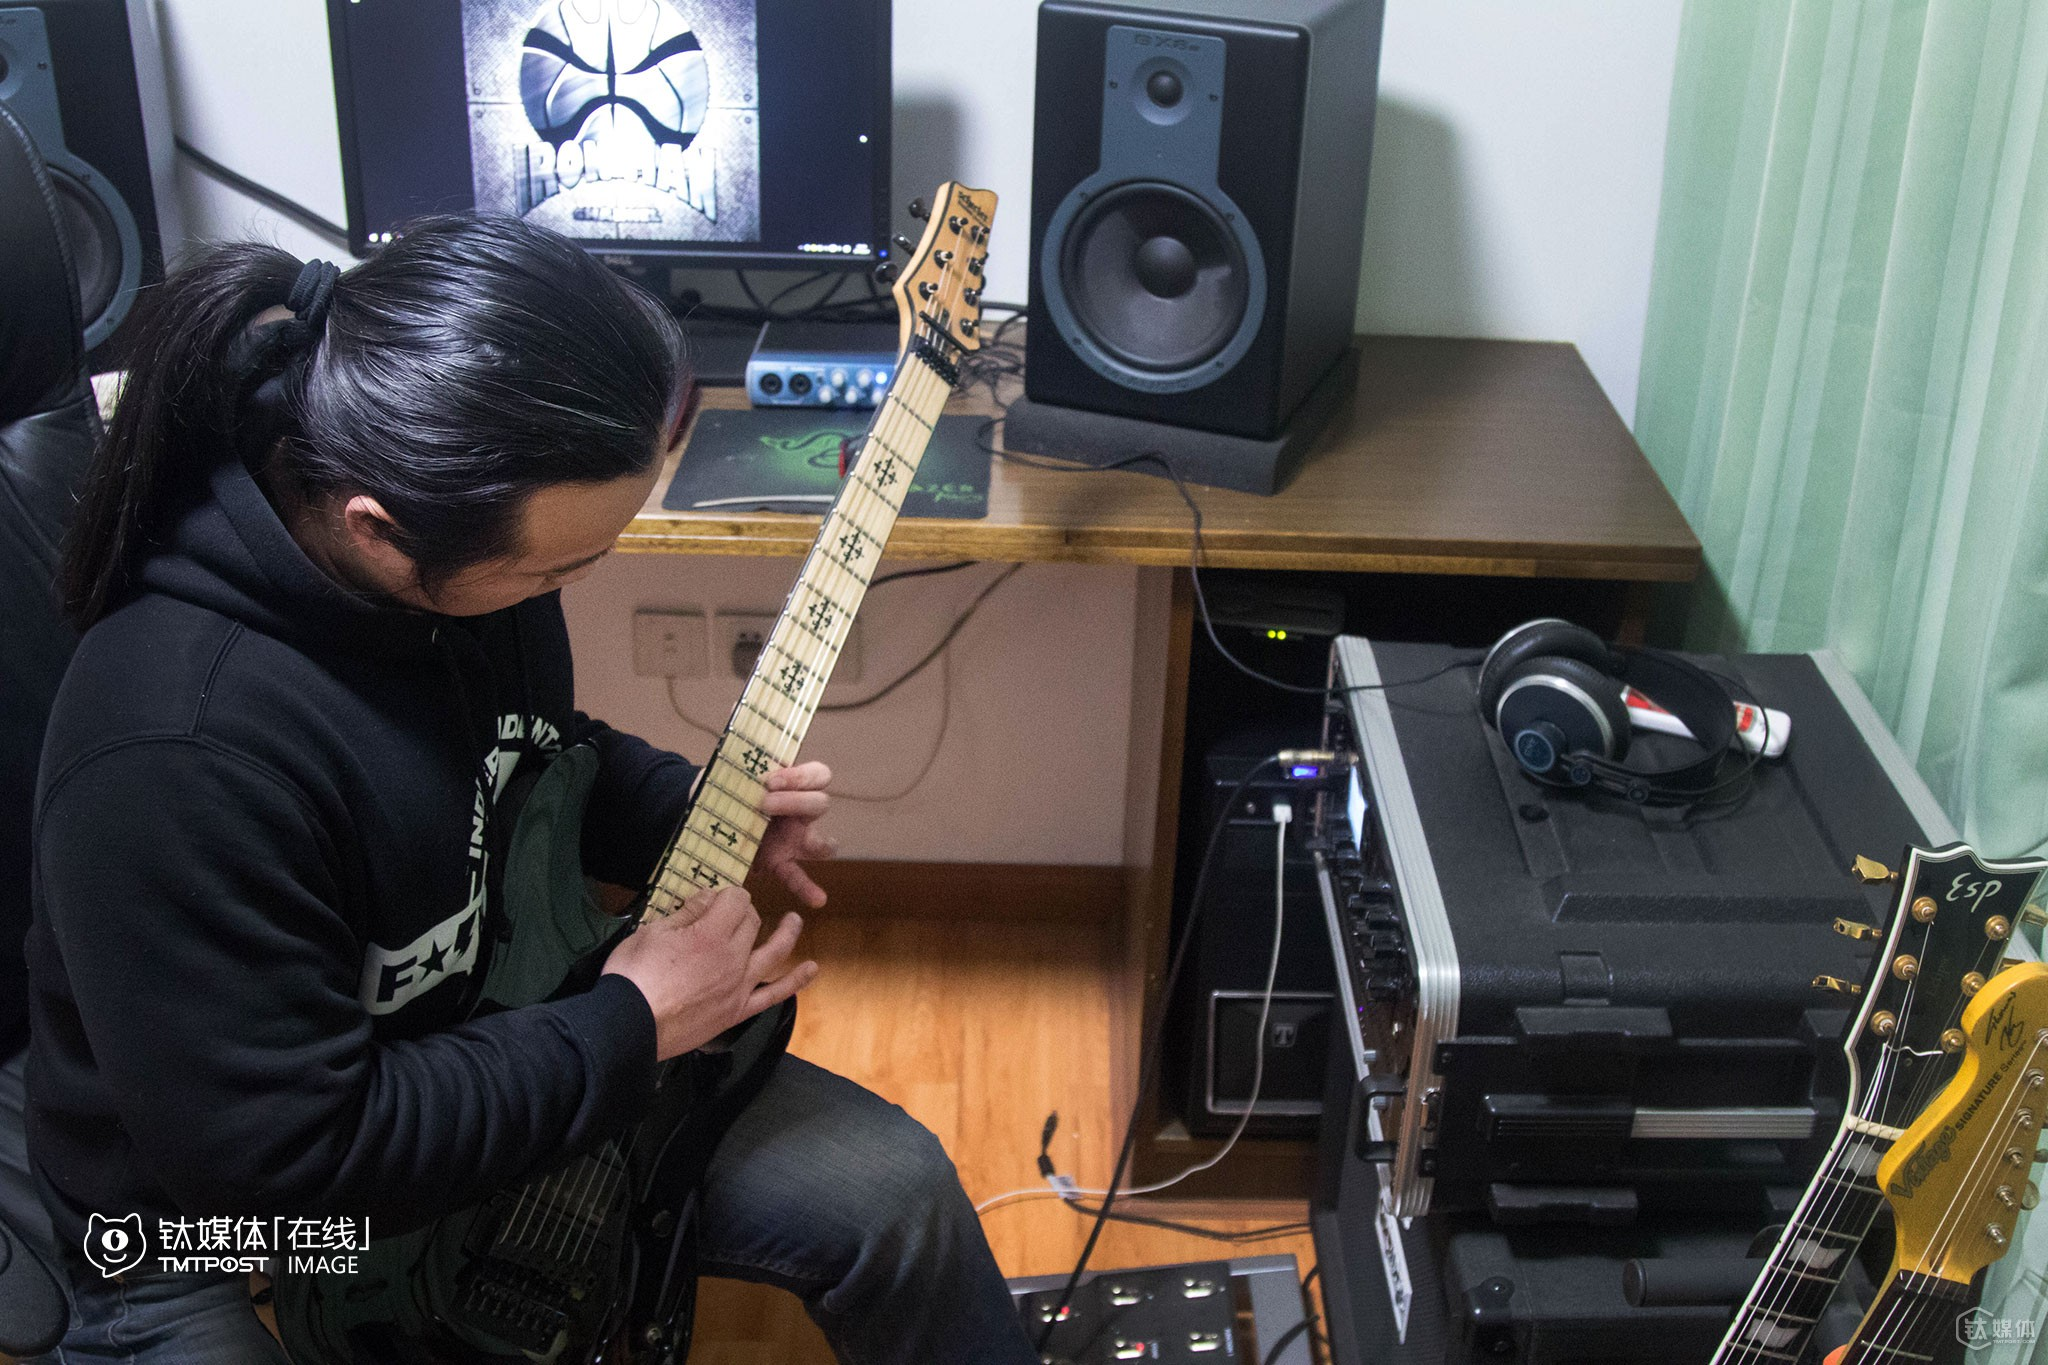 """Many people would prefer to buy guitars that are more expensive, yet more money should be spent in buying music, textbooks,"" said he. Mr. Chen started playing guitars at the age of 14, and had been playing guitars and composing new songs for two hours a day for 18 years."